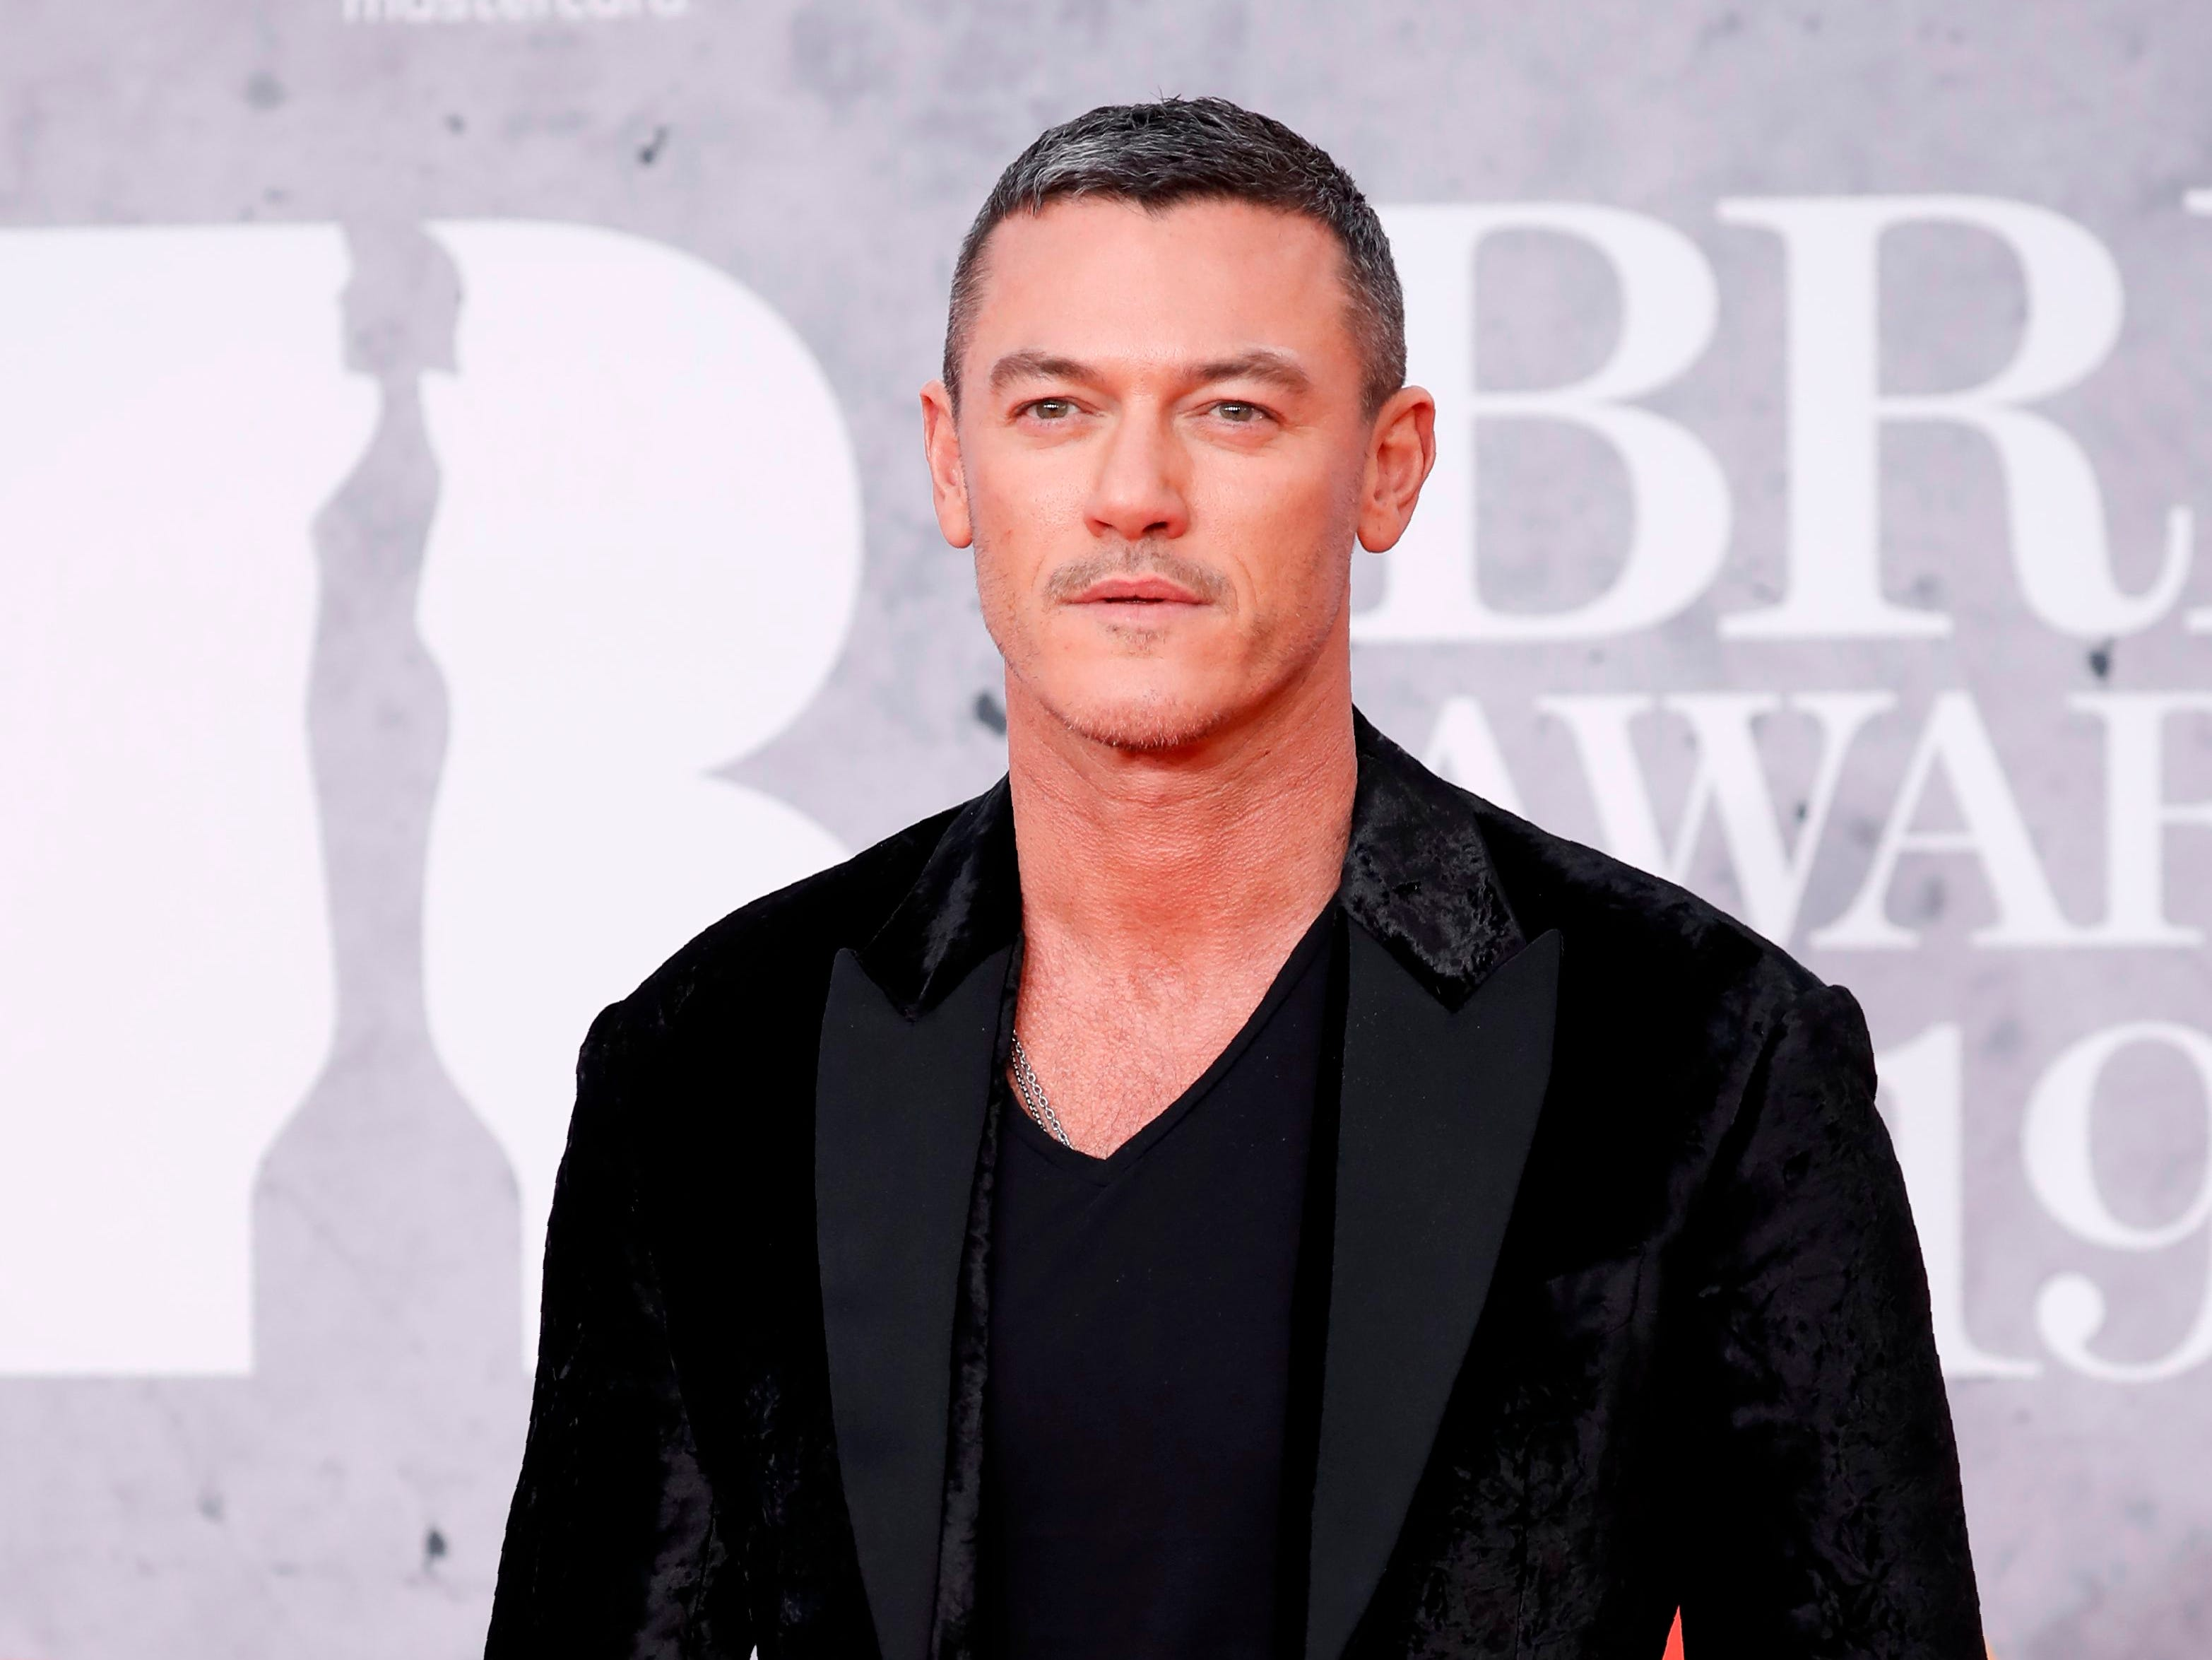 British actor Luke Evans poses on the red carpet on arrival for the BRIT Awards 2019 in London on February 20, 2019. (Photo by Tolga AKMEN / AFP) / RESTRICTED TO EDITORIAL USE  NO POSTERS  NO MERCHANDISE NO USE IN PUBLICATIONS DEVOTED TO ARTISTSTOLGA AKMEN/AFP/Getty Images ORG XMIT: 712 ORIG FILE ID: AFP_1DO08E